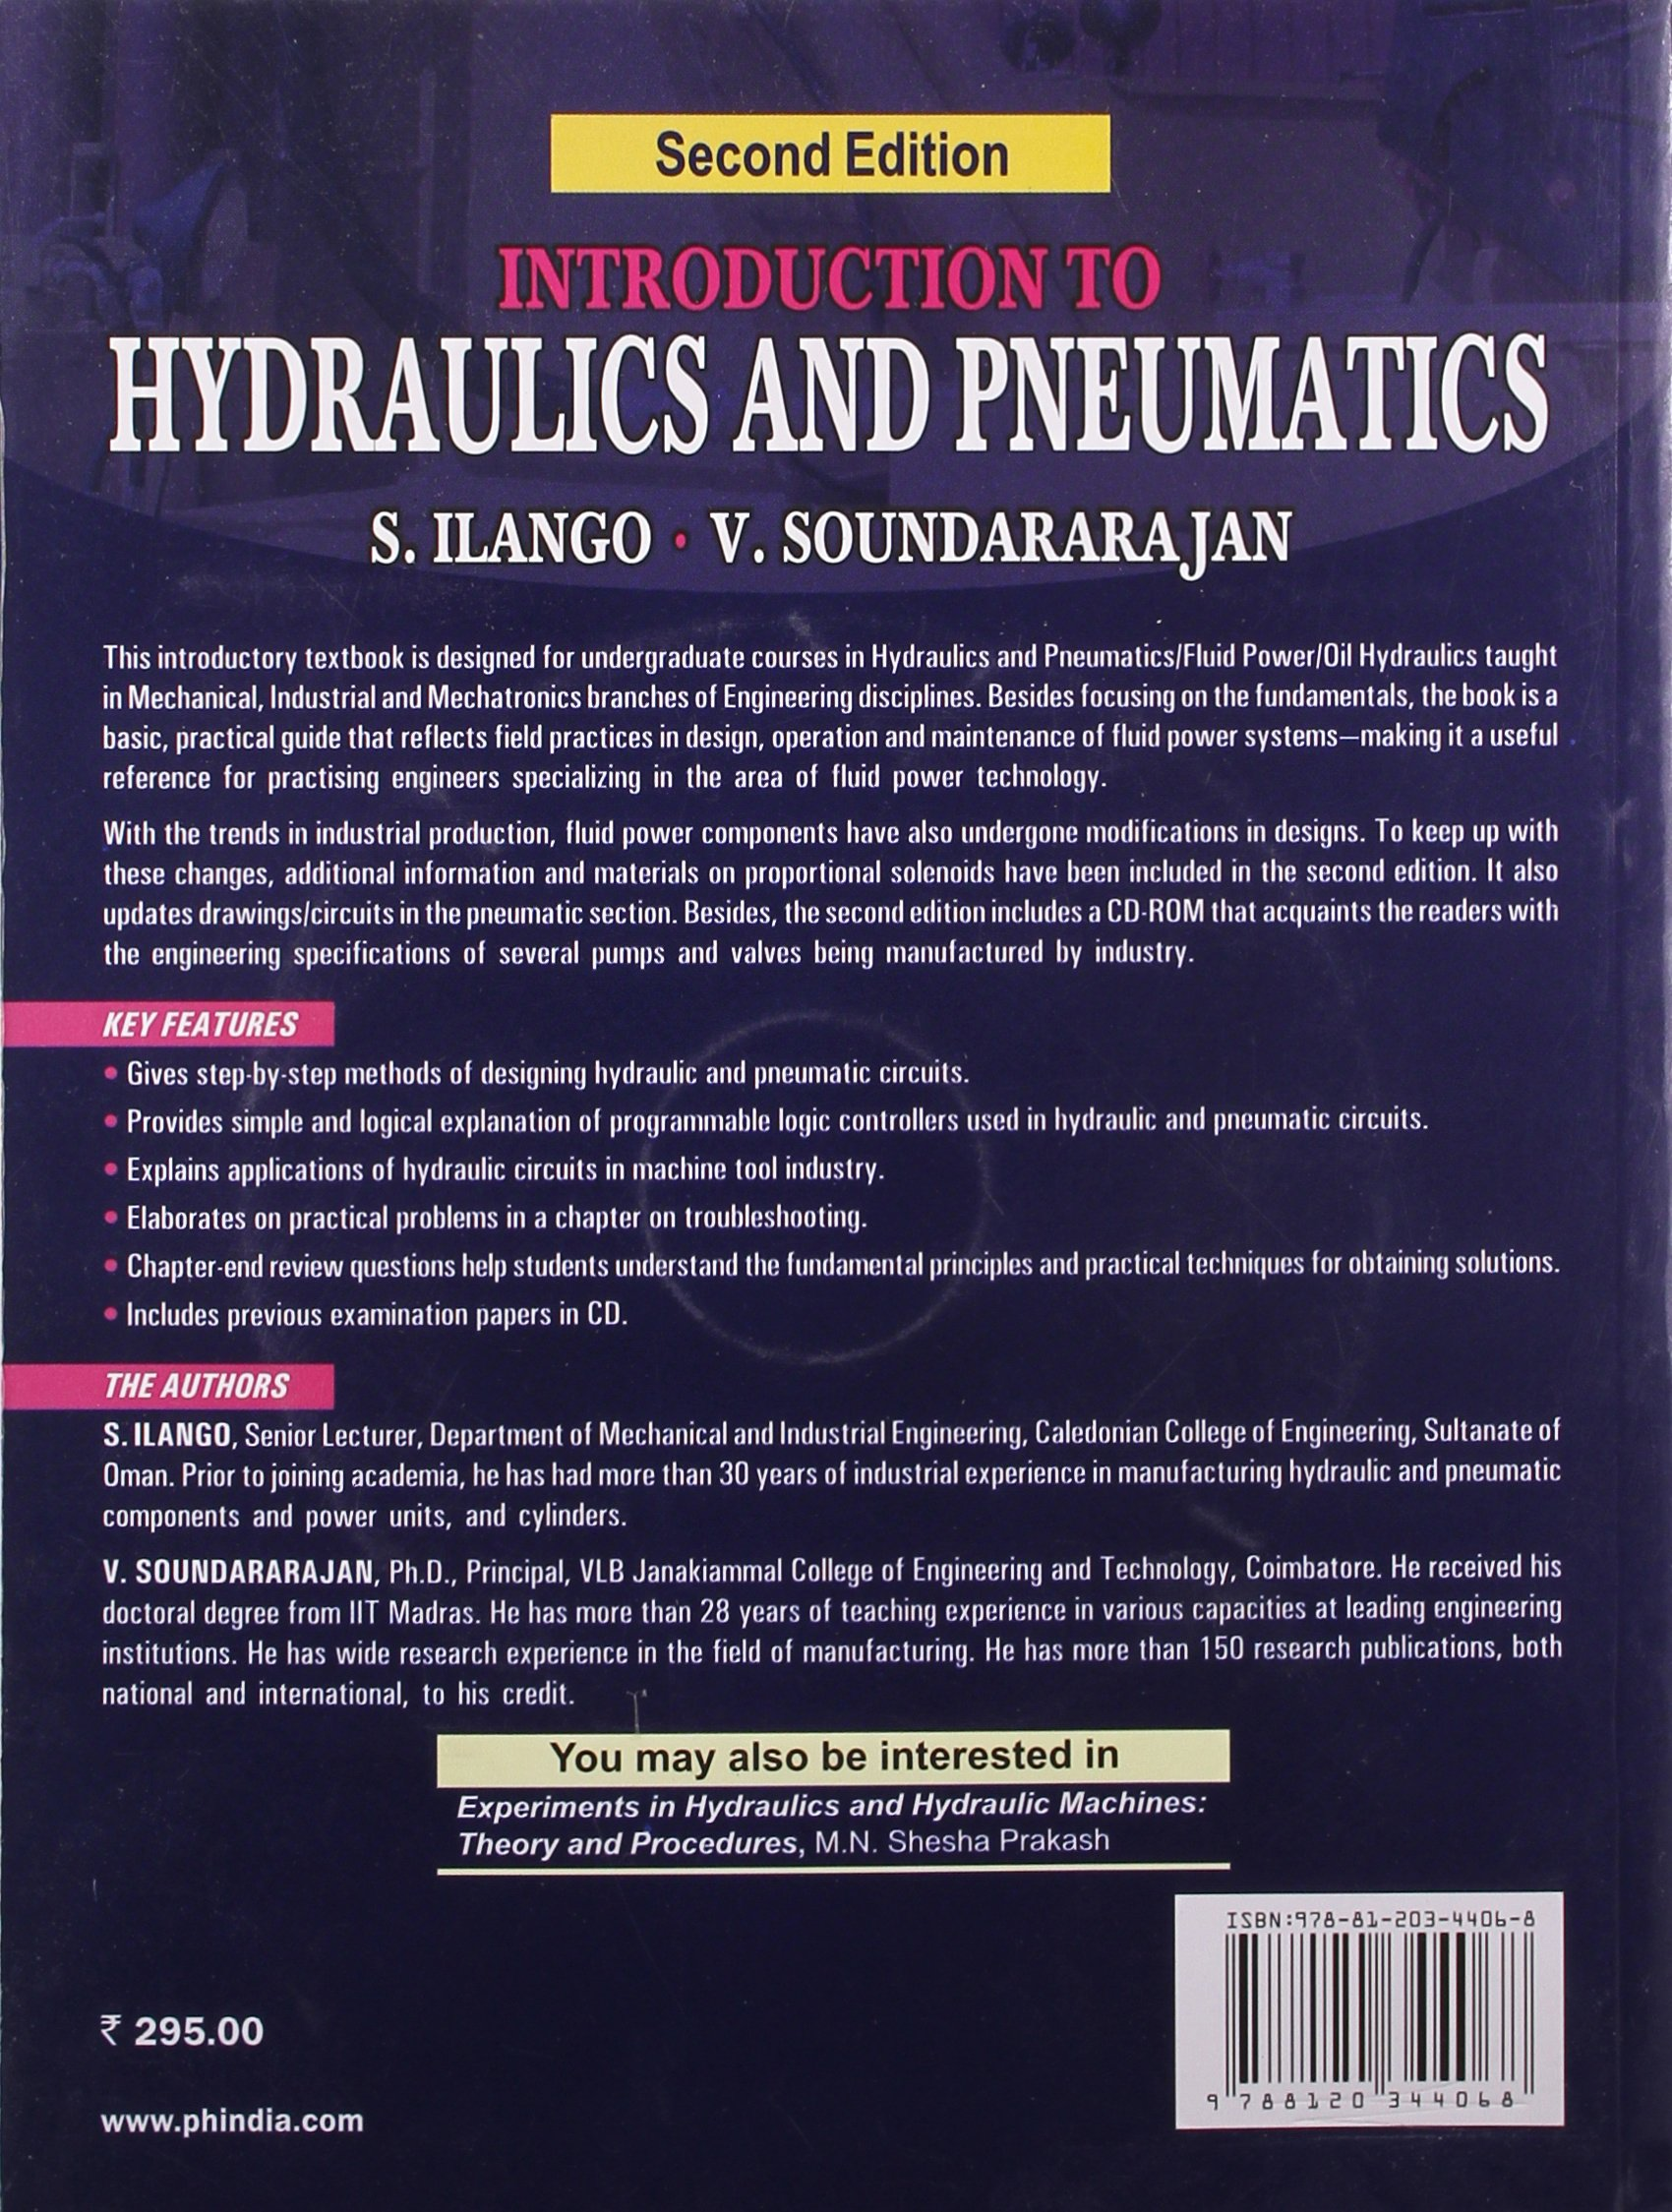 Buy Introduction To Hydraulics And Pneumatics Book Online At Low The Basics Of Hydraulic Circuitry Prices In India Reviews Ratings